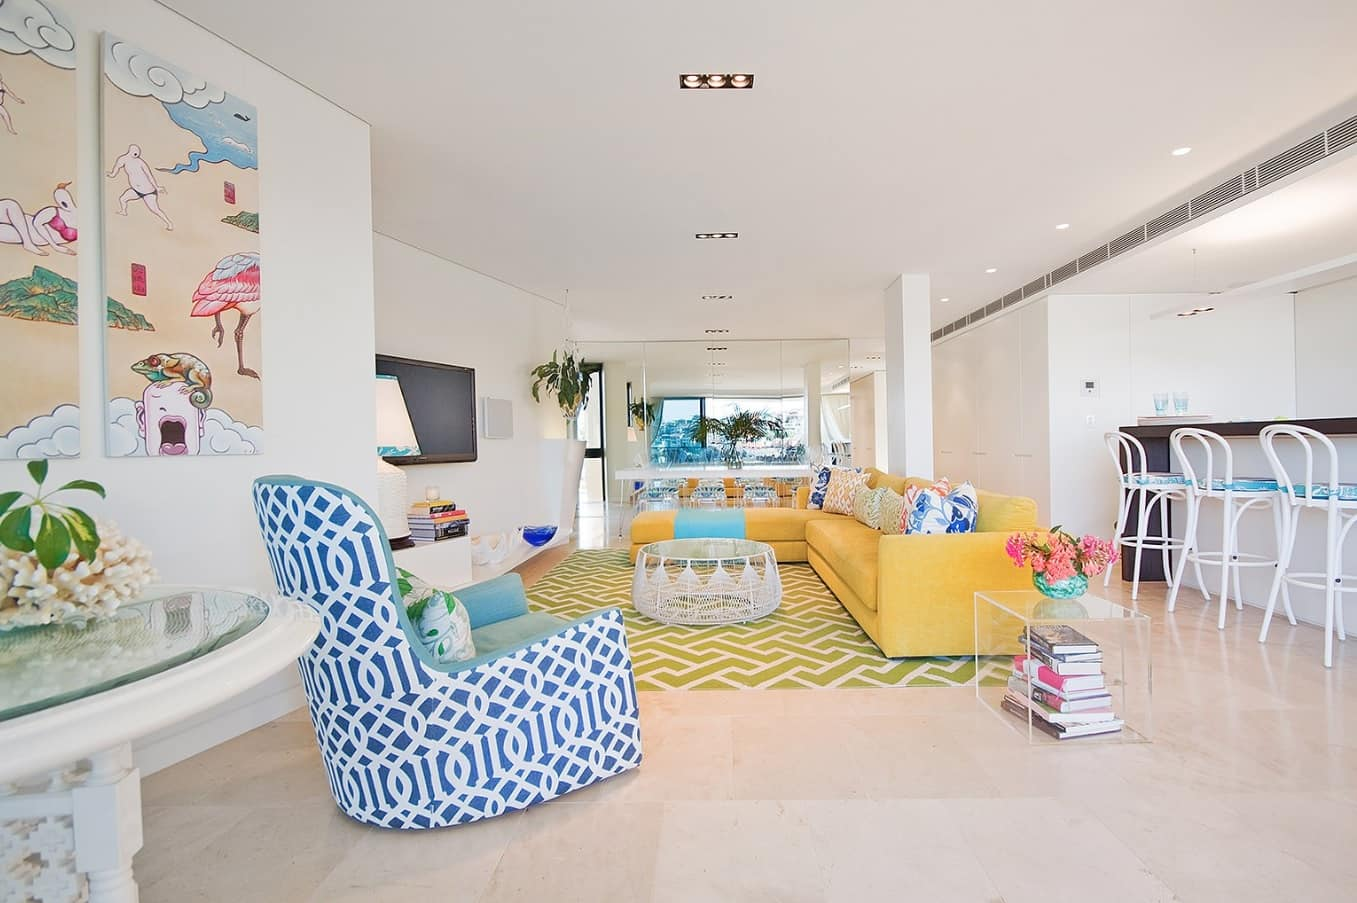 How to Make Your New Home Extremely Energy Efficient. Contemporary styled colorful open space layout